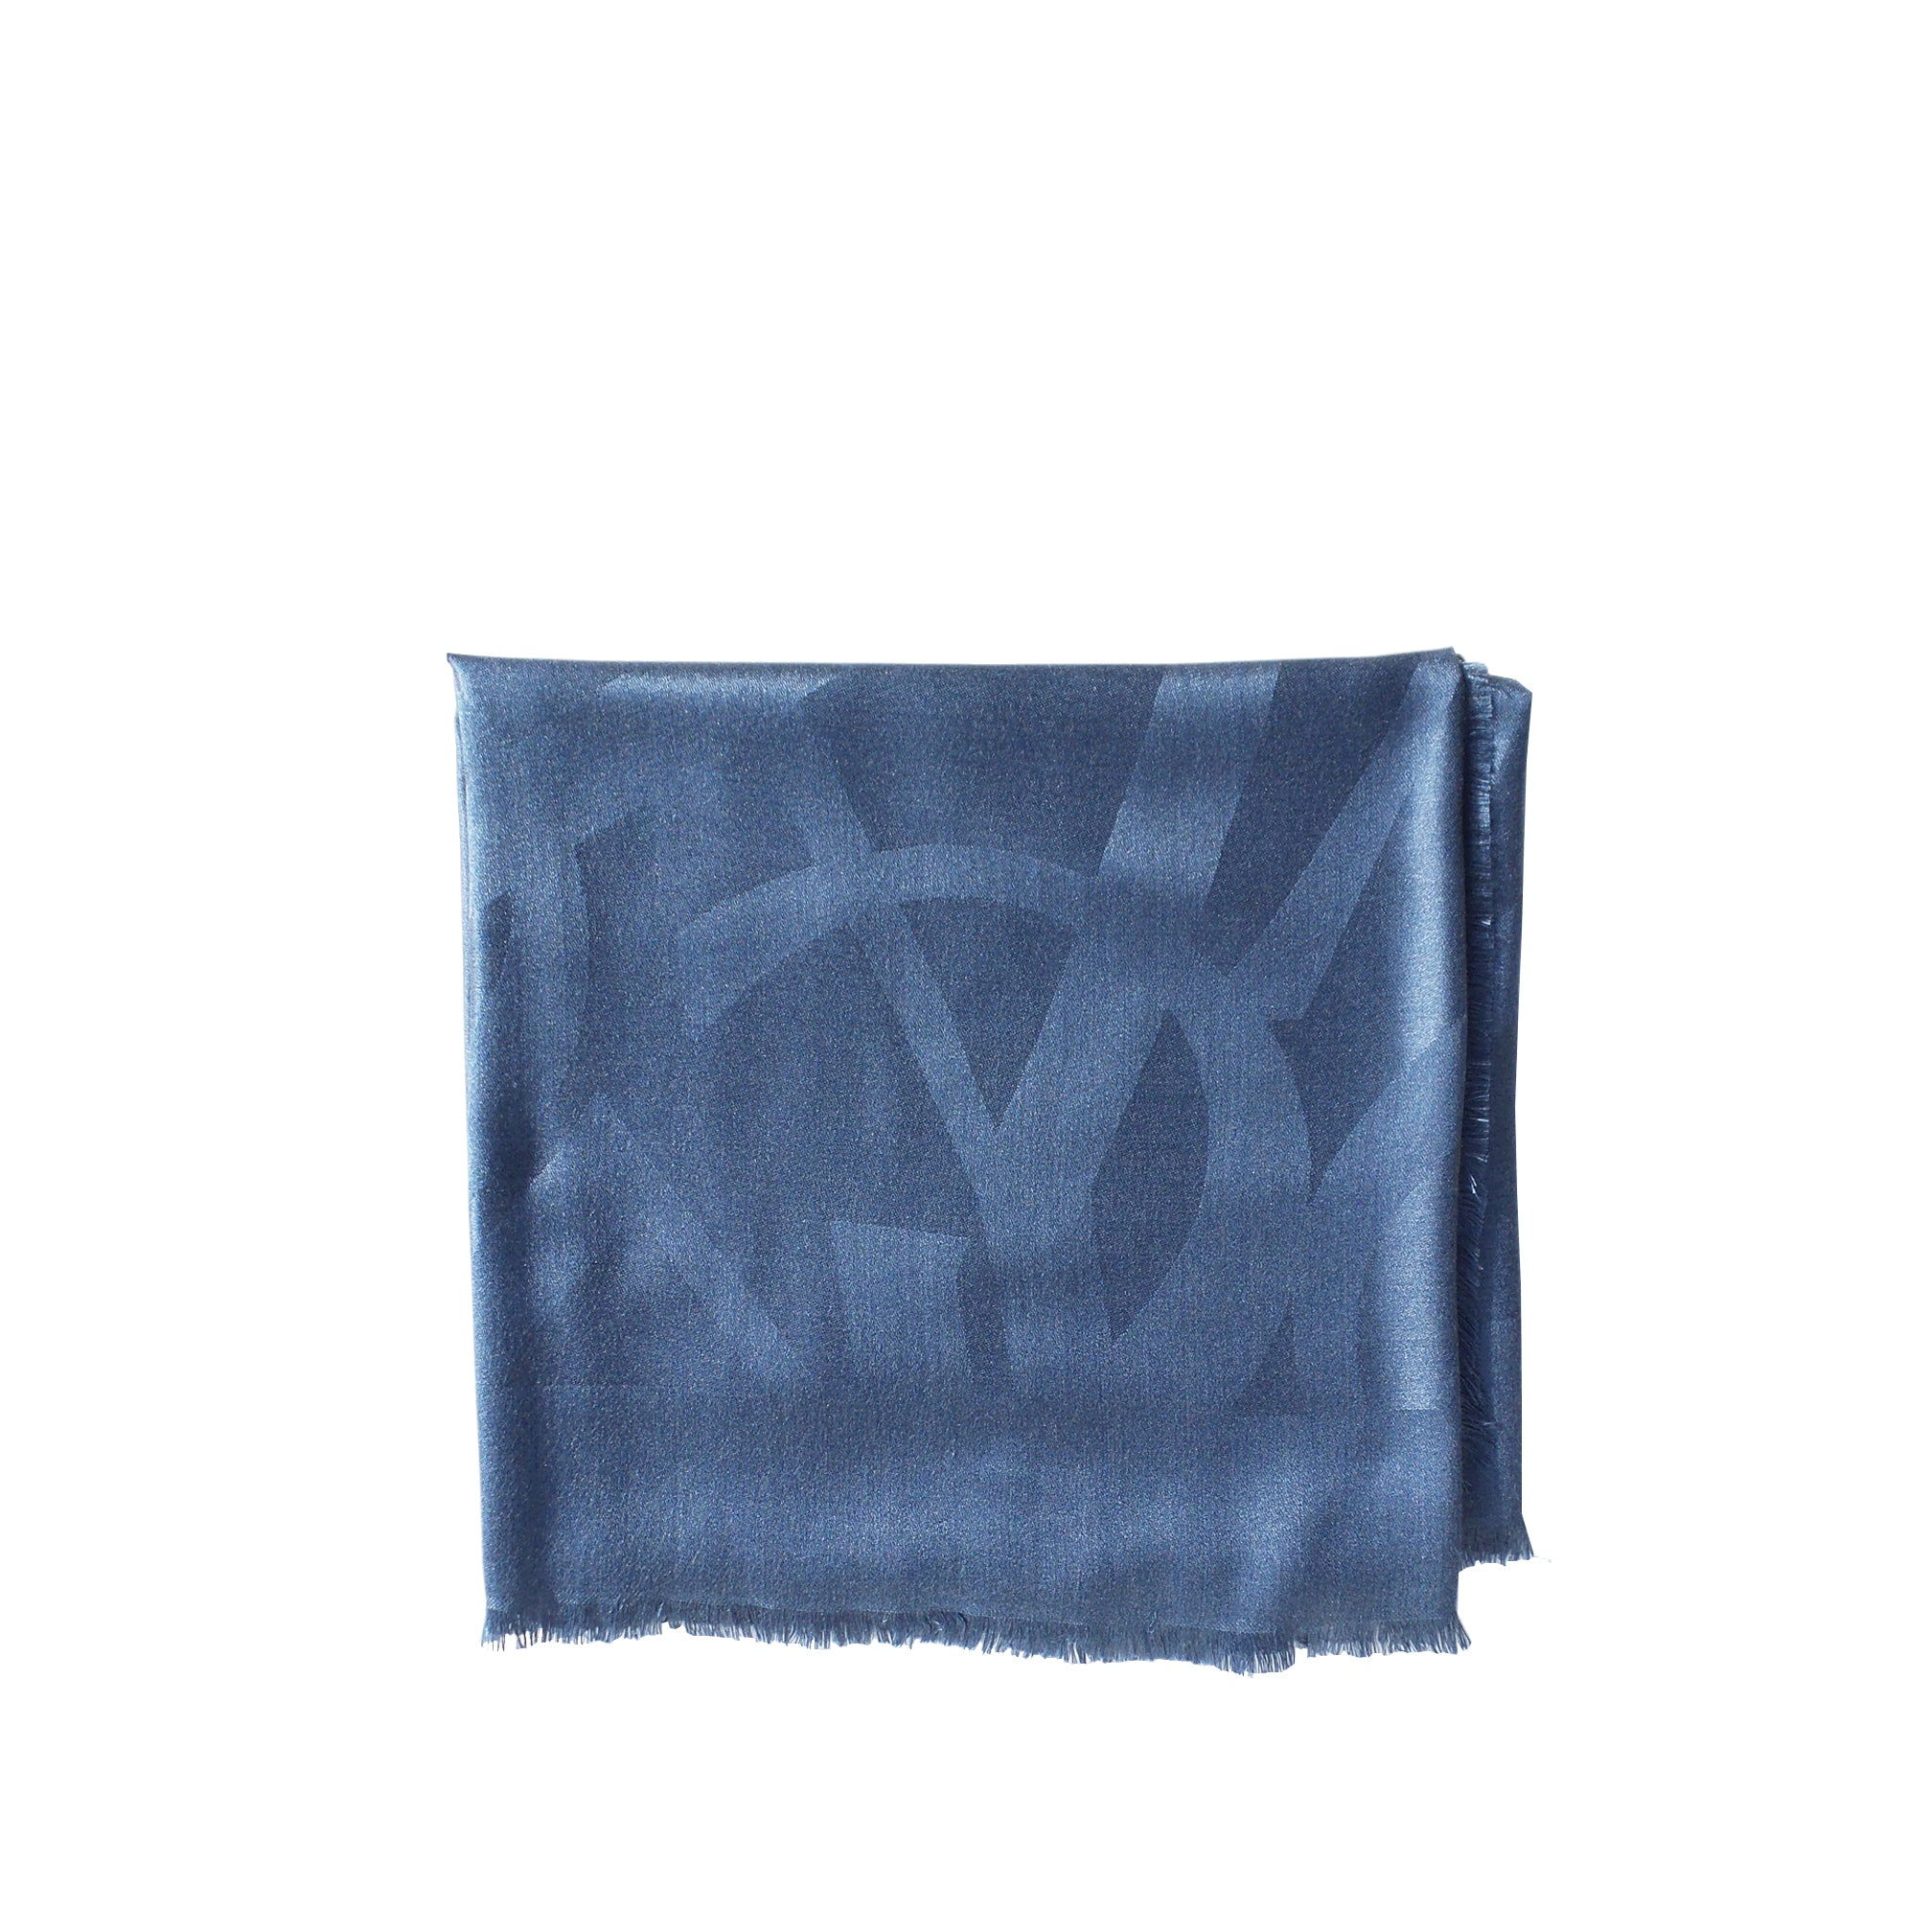 'Sold' SAINT LAURENT Blue Random Logo Jacquard Fringe Trim Square Silk Scarf Stole $495